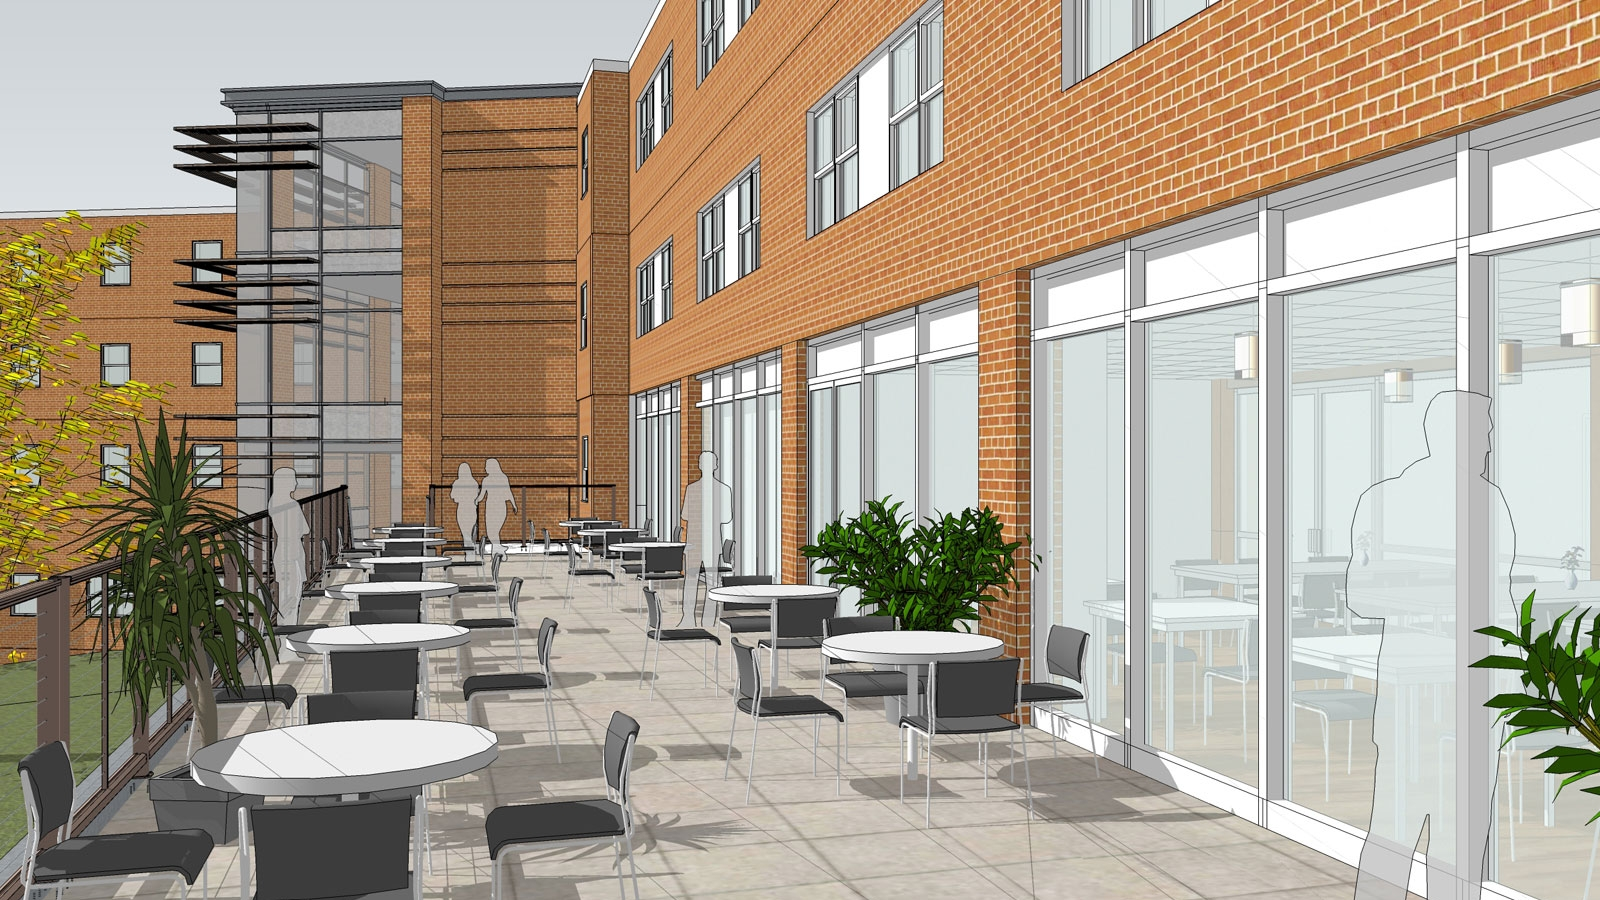 Proposed New Terrace